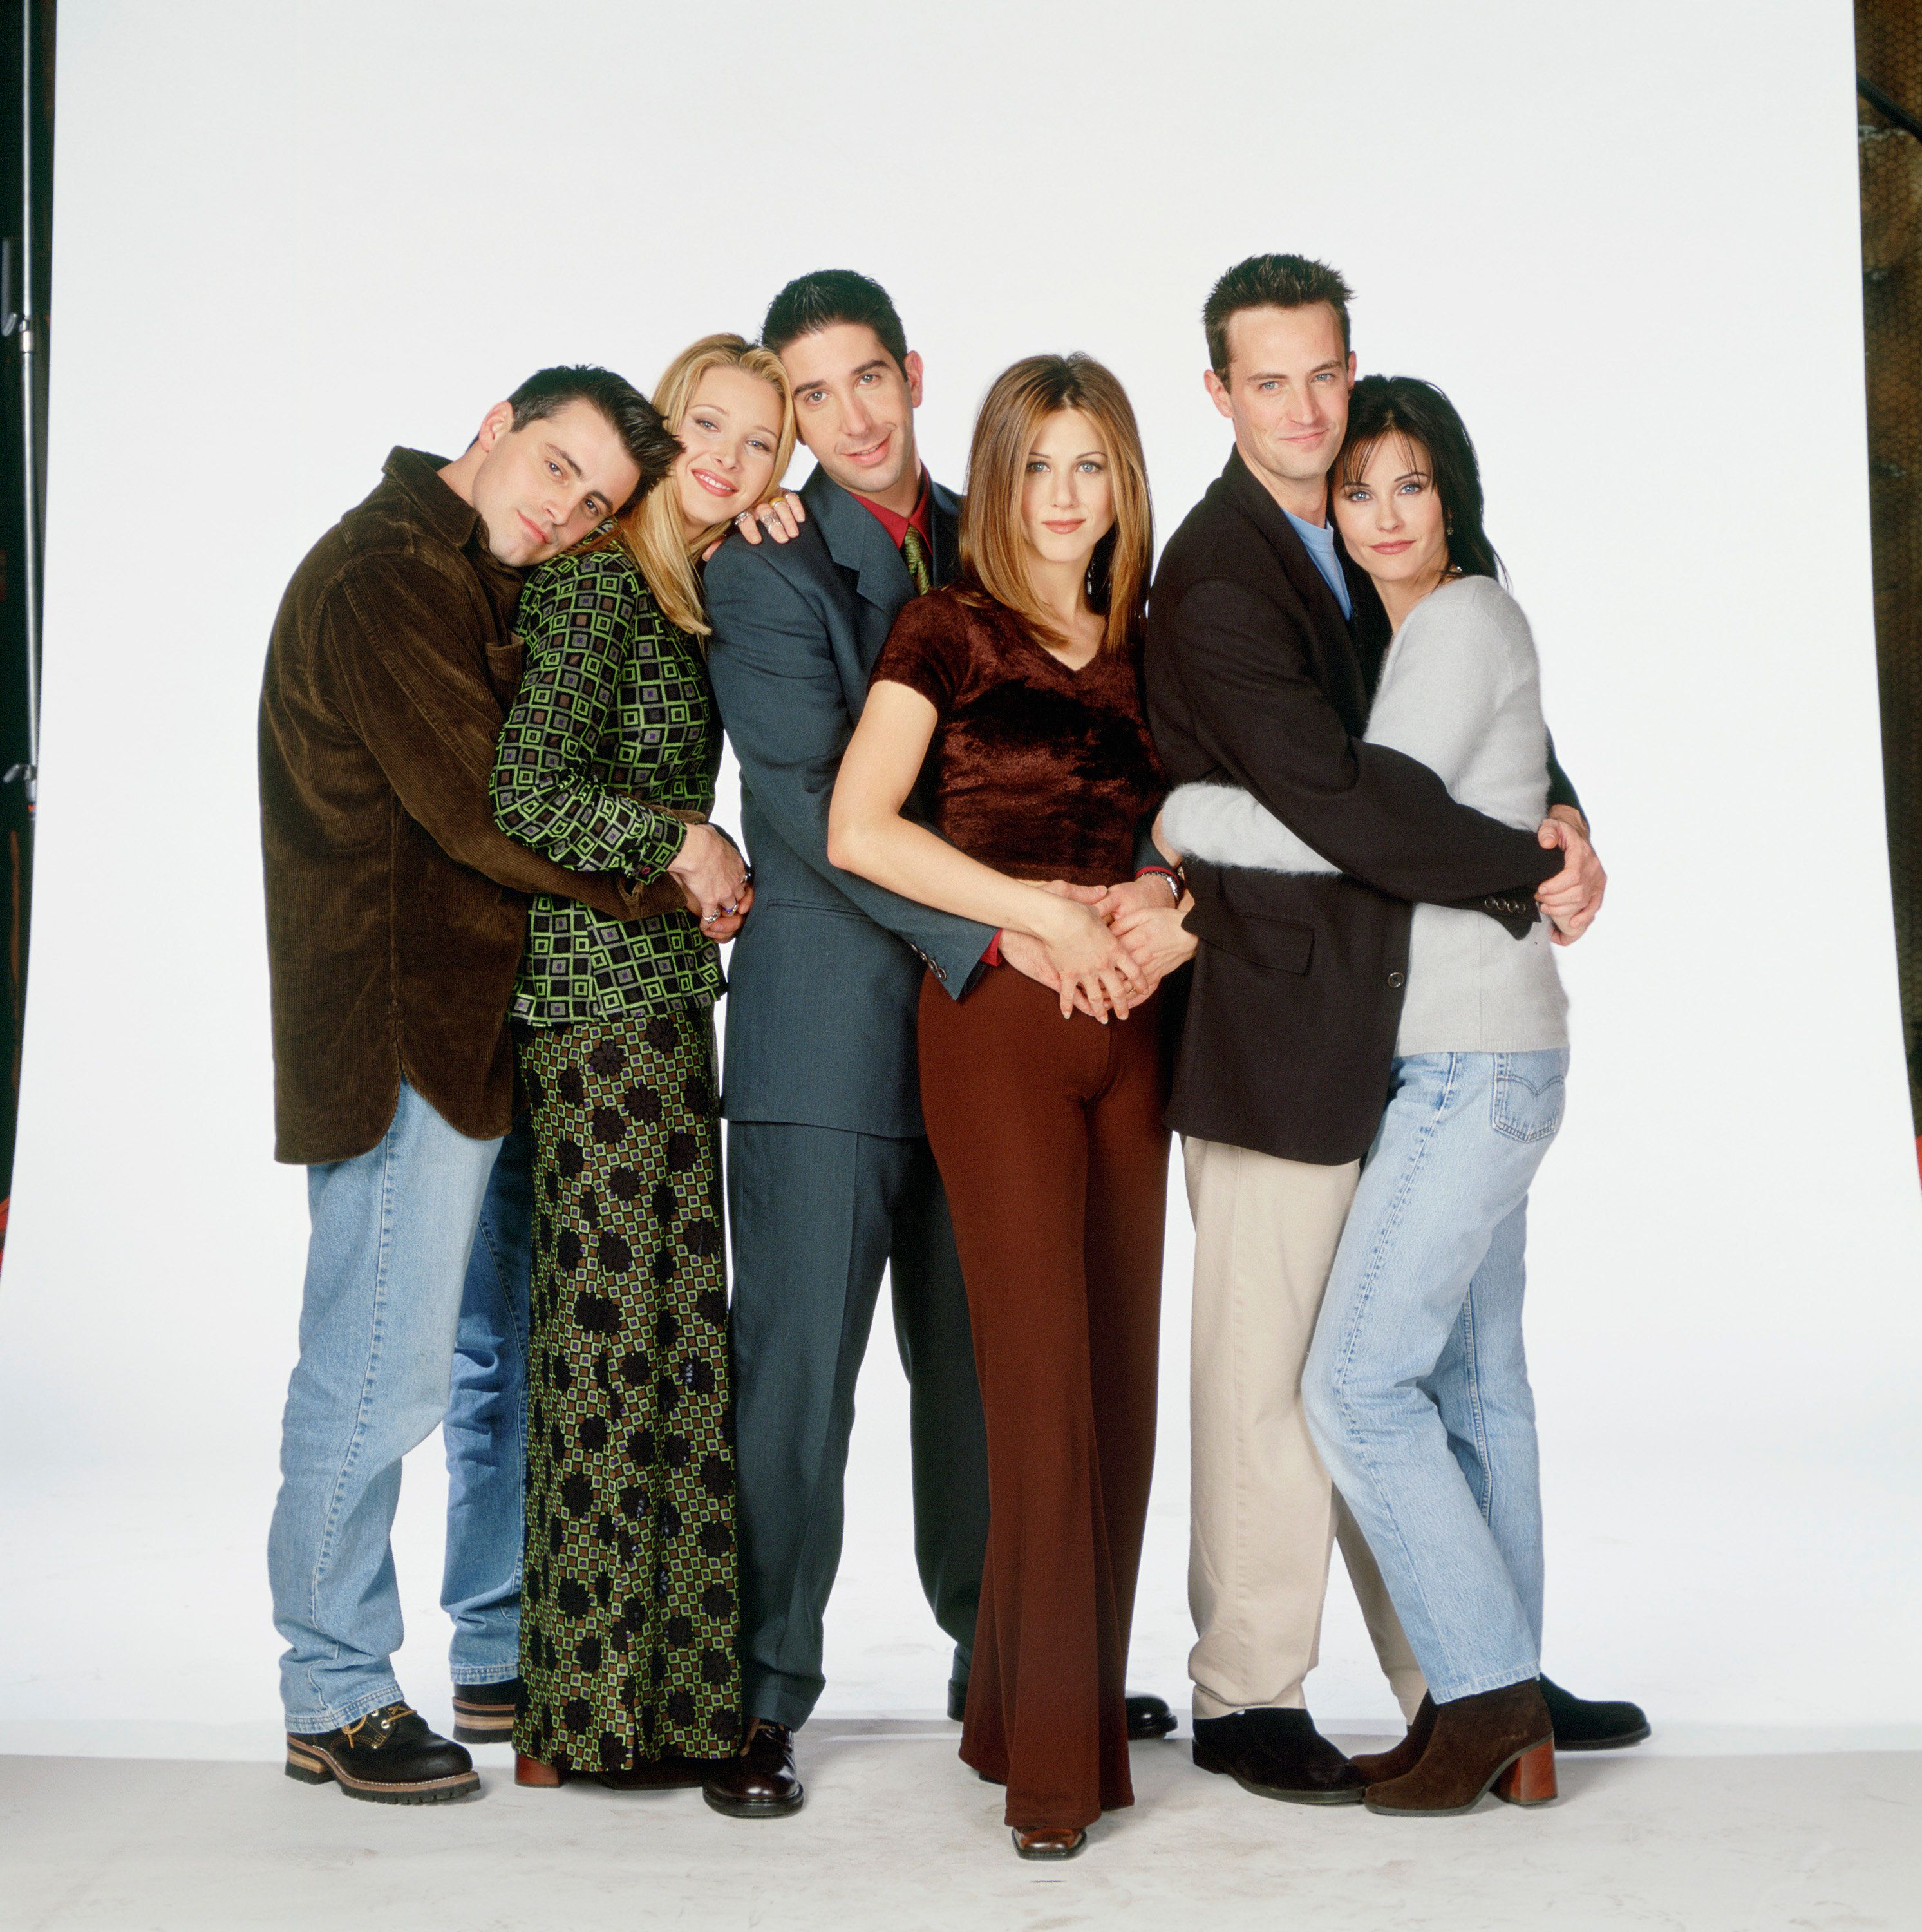 FRIENDS -- Pictured: (l-r) Matt LeBlanc as Joey Tribbiani, Lisa Kudrow as Phoebe Buffay, David Schwimmer as Ross Geller, Jennifer Aniston as Rachel Green, Matthew Perry as Chandler Bing, Courteney Cox Arquette as Monica Geller  (Photo by NBC/NBCU Photo Bank via Getty Images)